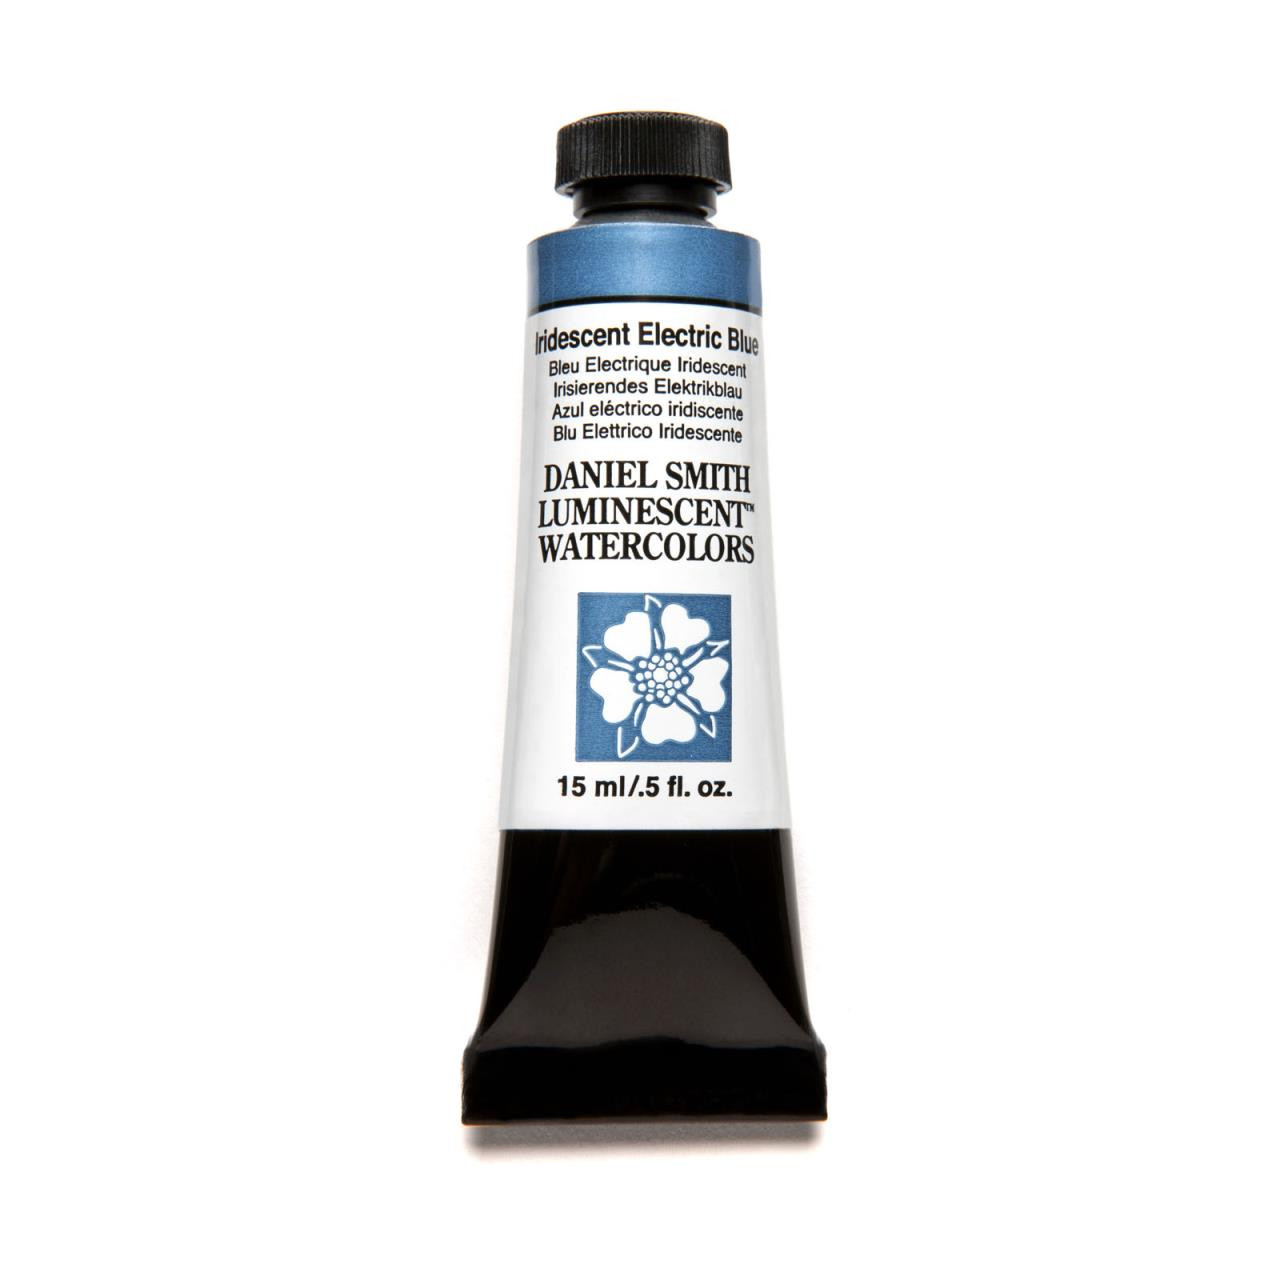 Iridescent Electric Blue (Luminescent), DANIEL SMITH Extra Fine Watercolors 15ml Tubes -